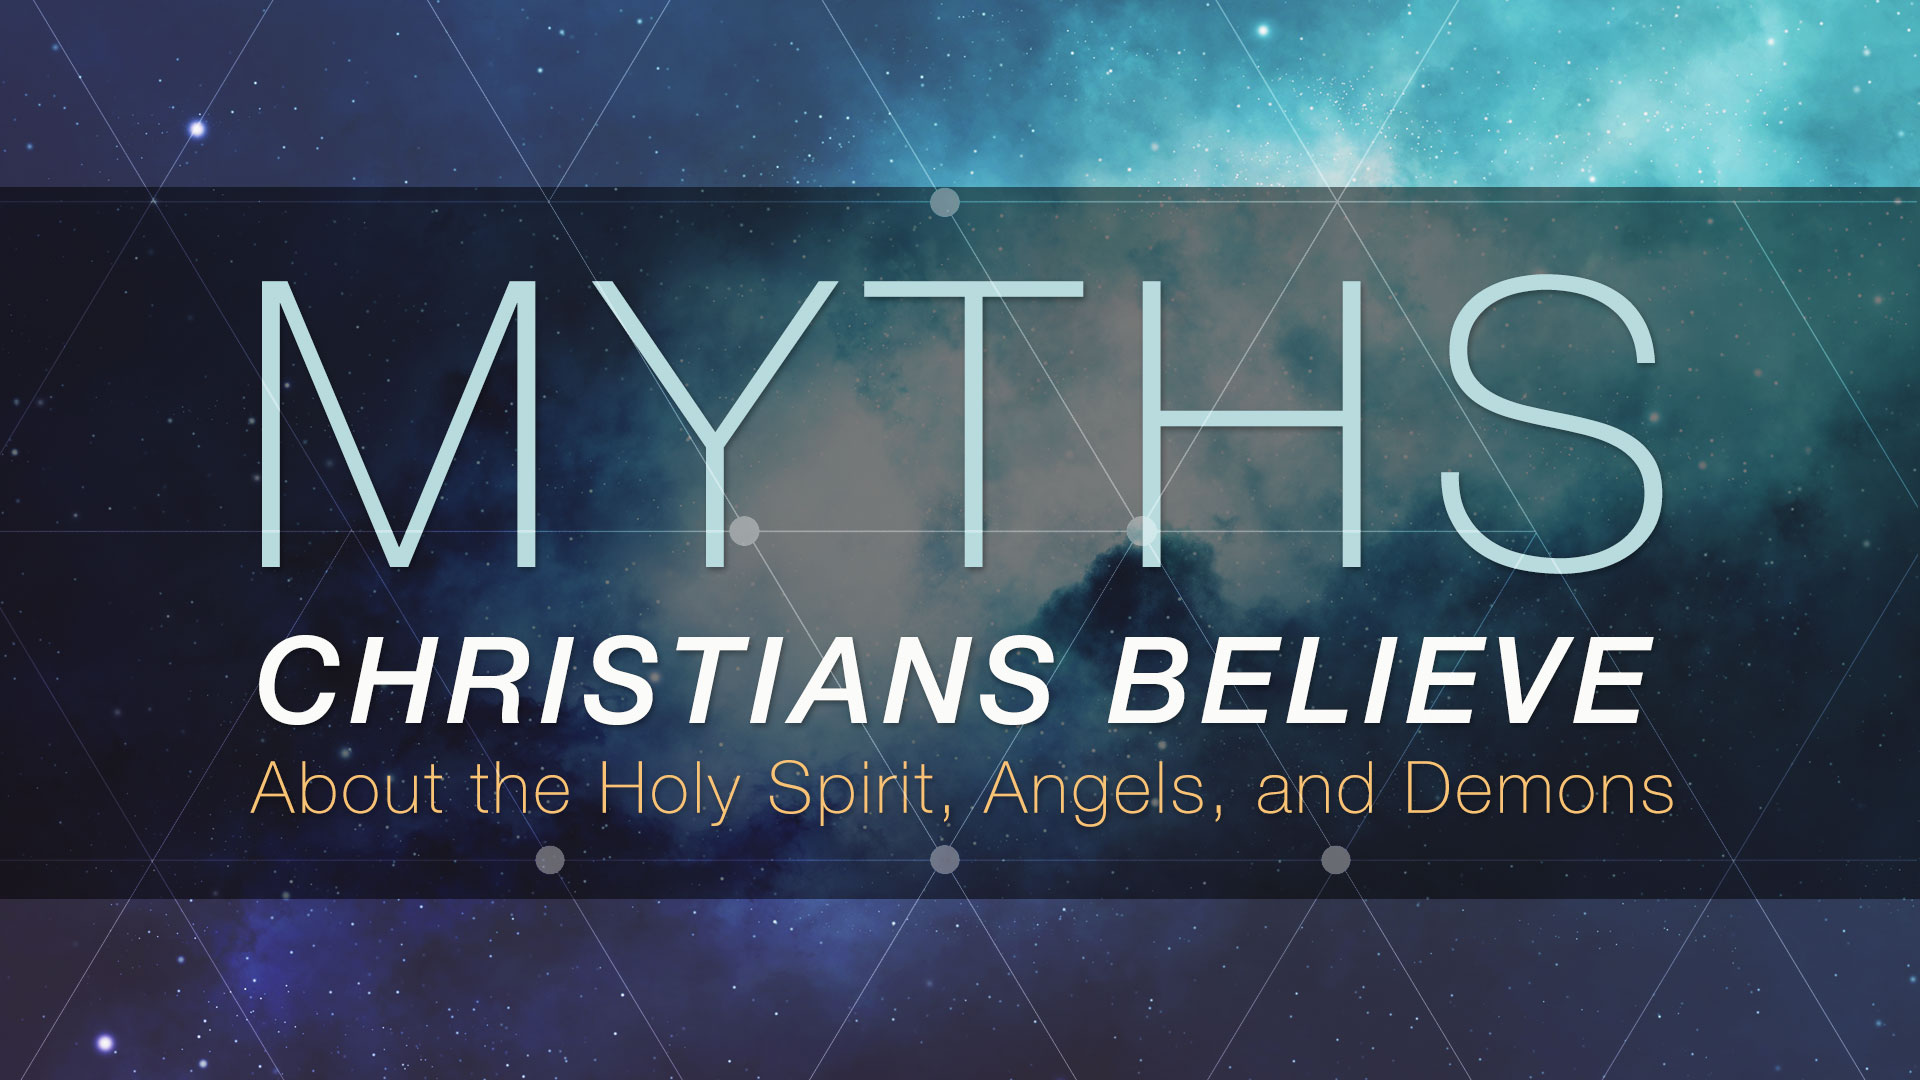 MYTHS-Christians-Believe-copy-3.jpg